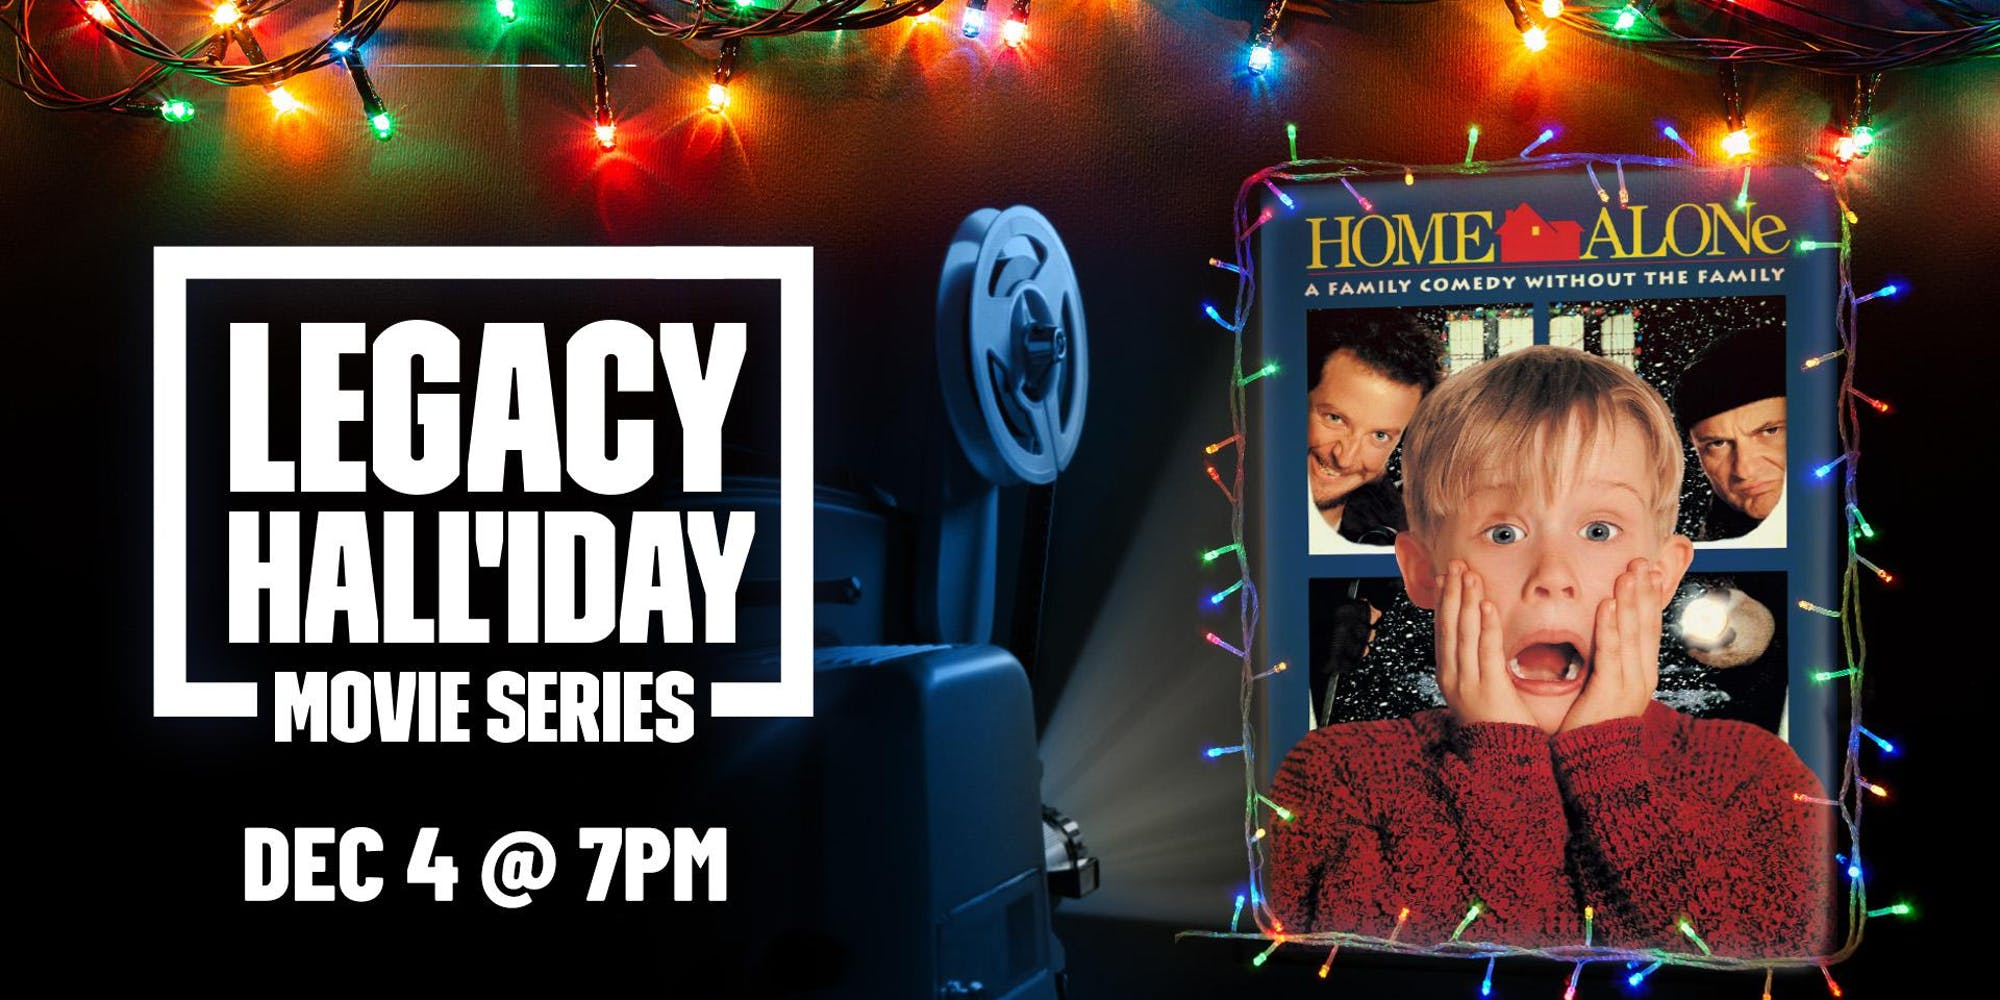 Legacy Hall'iday Movie Series: Home Alone